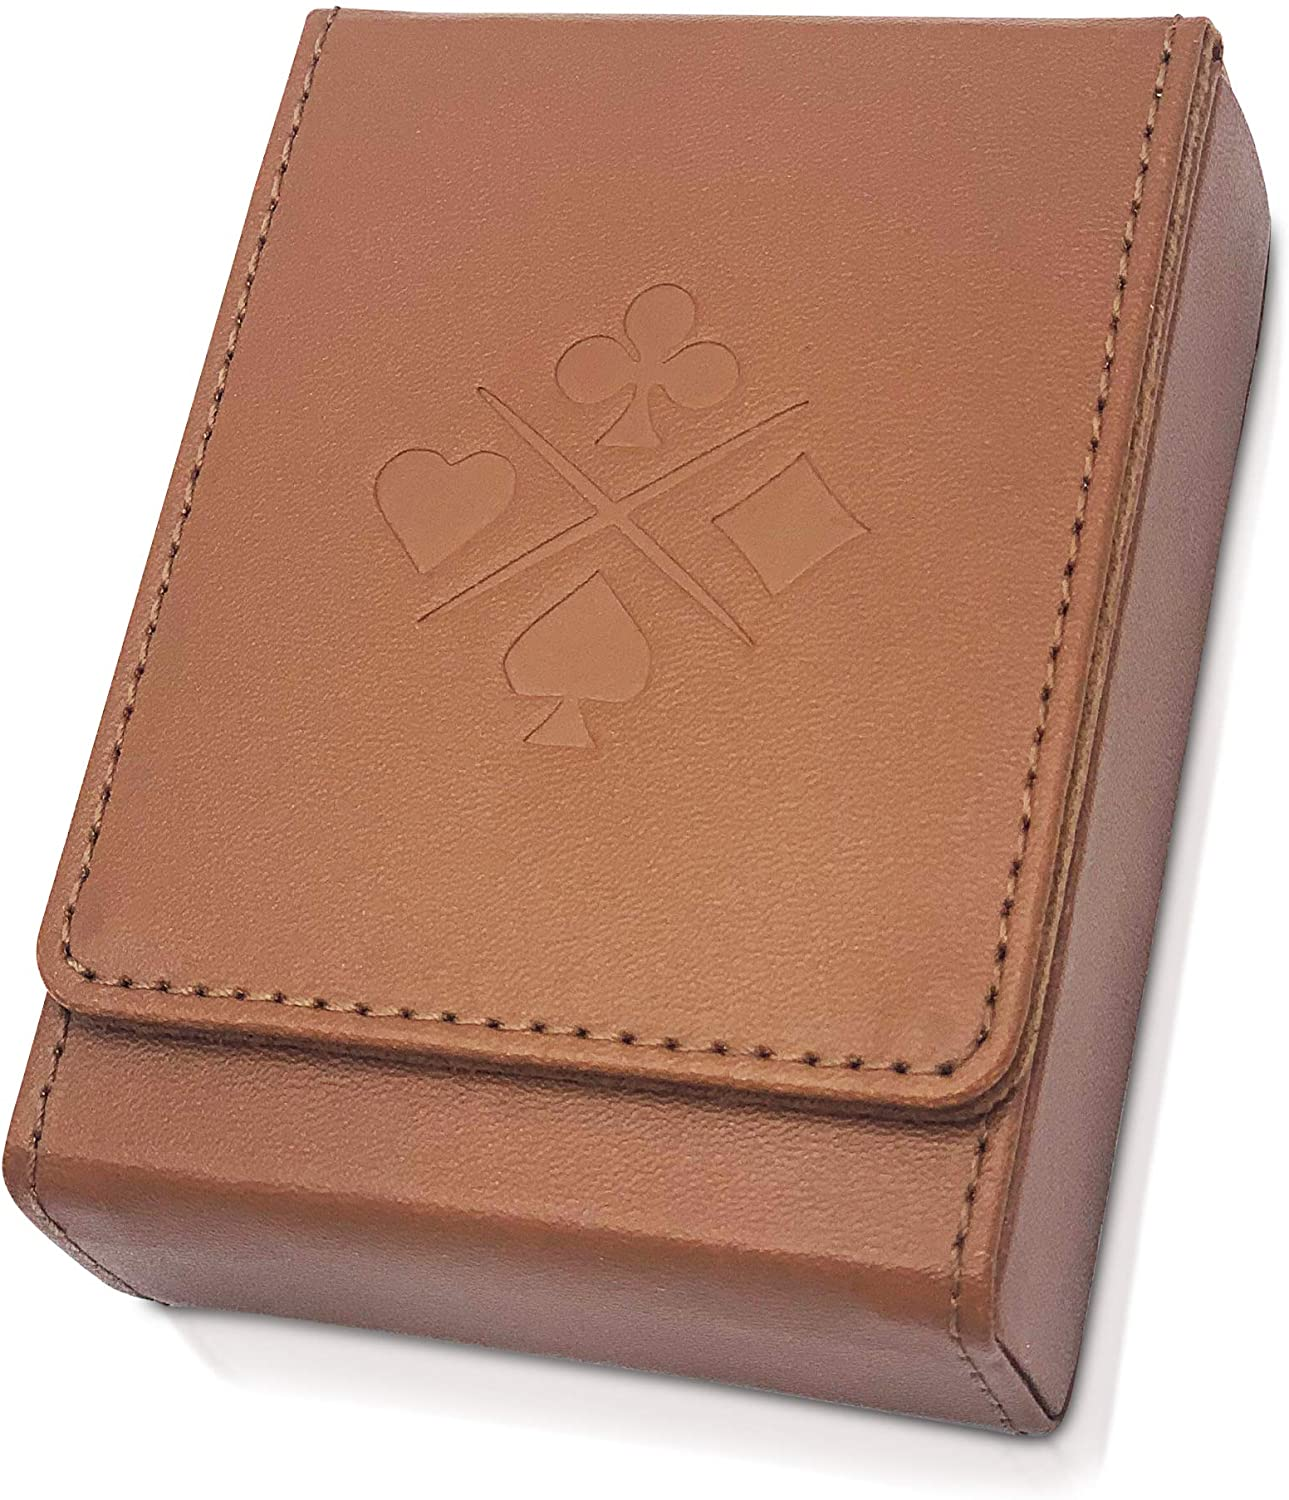 Luck Lab Single Deck Leather Playing Card Case/Holder - Brown - Fits Poker and Bridge Size Cards